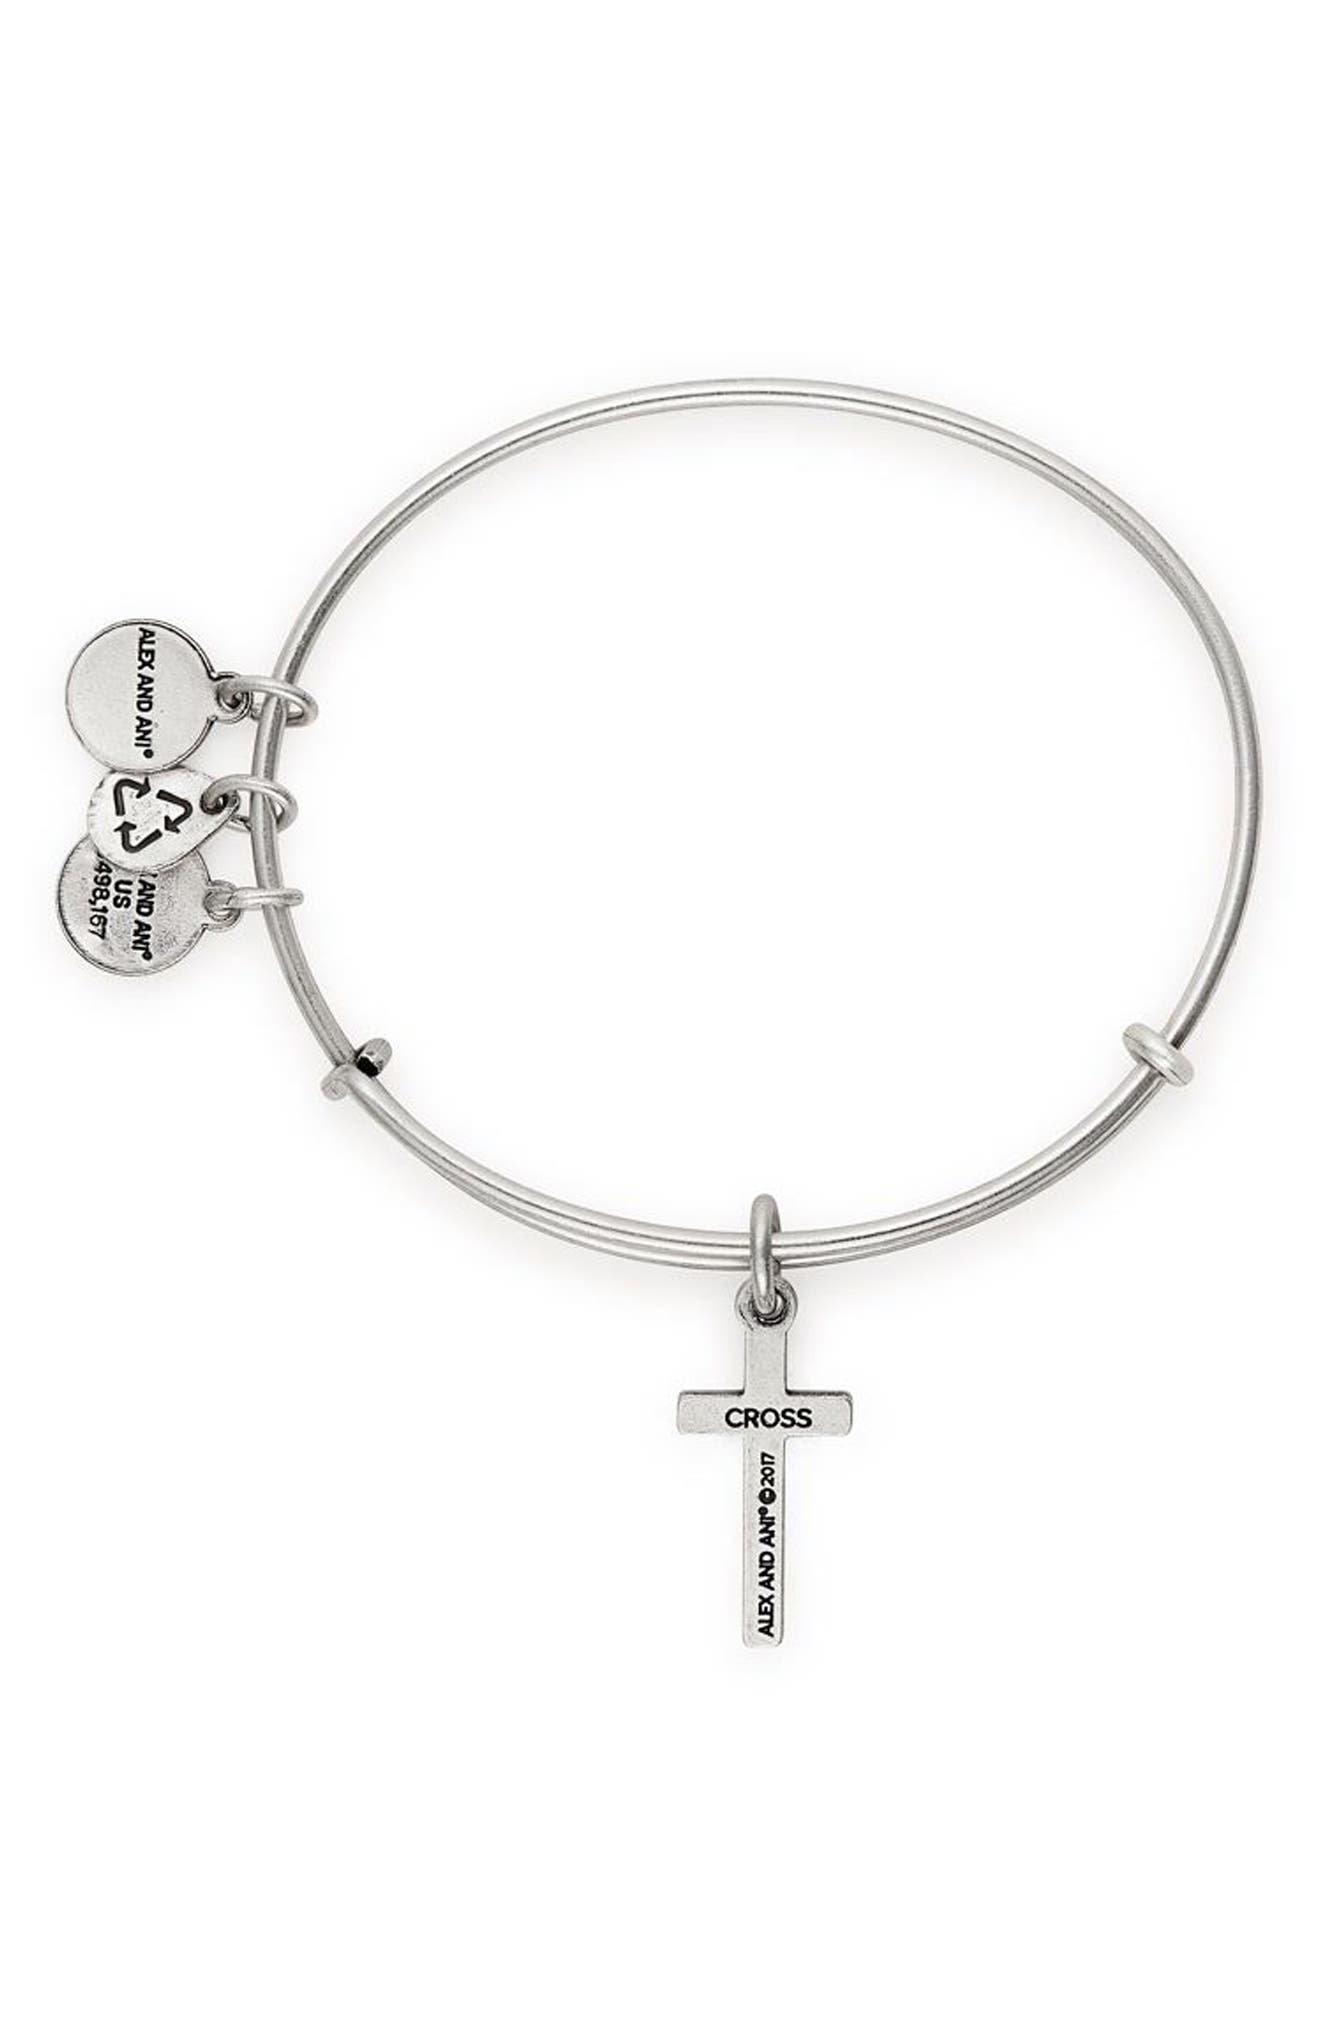 Cross Bangle,                             Alternate thumbnail 2, color,                             Silver